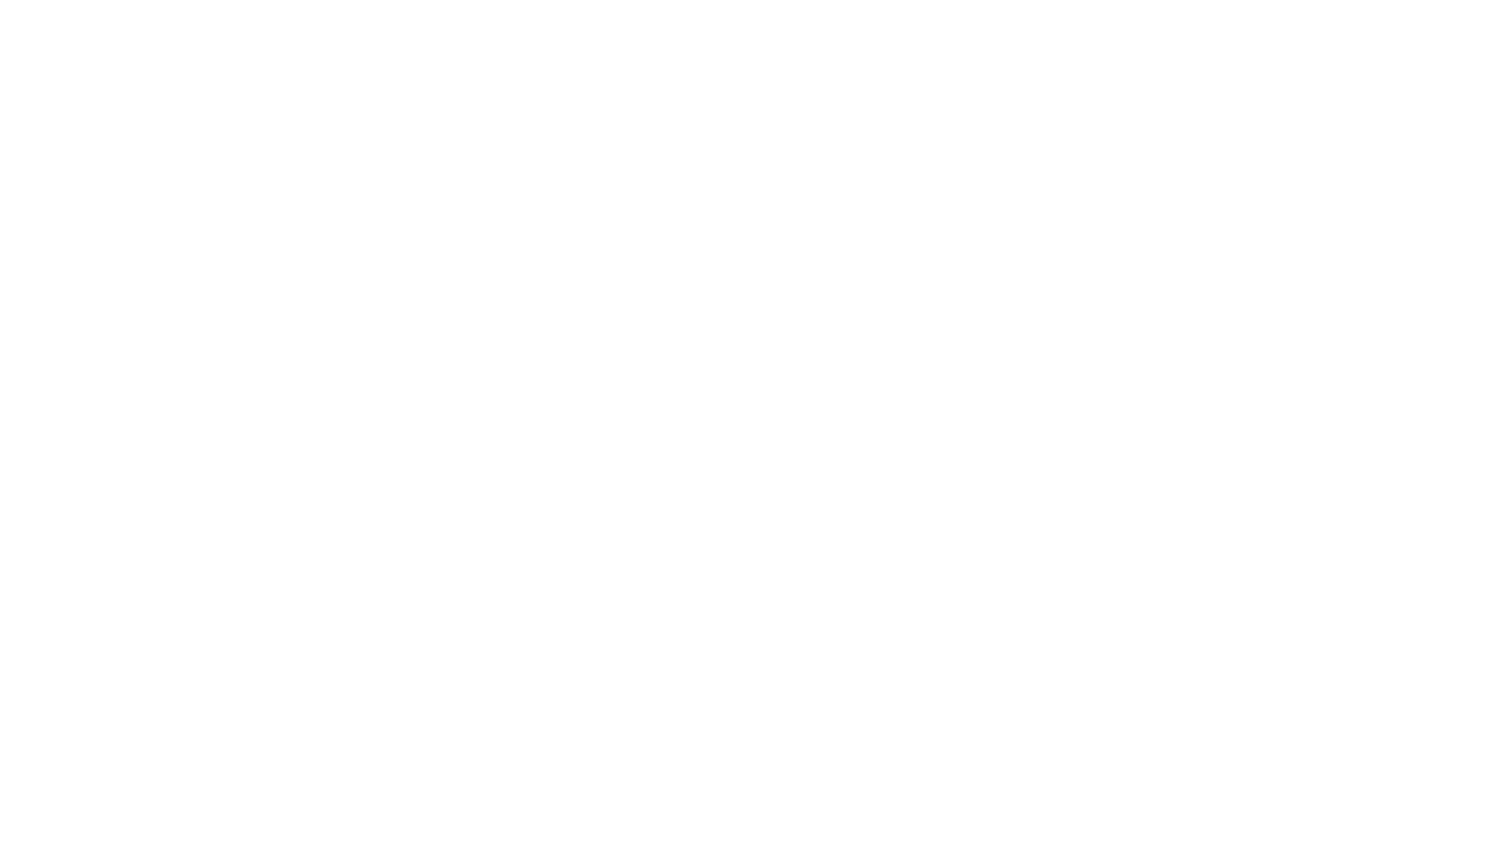 ROOTED SOCIAL HOUSE